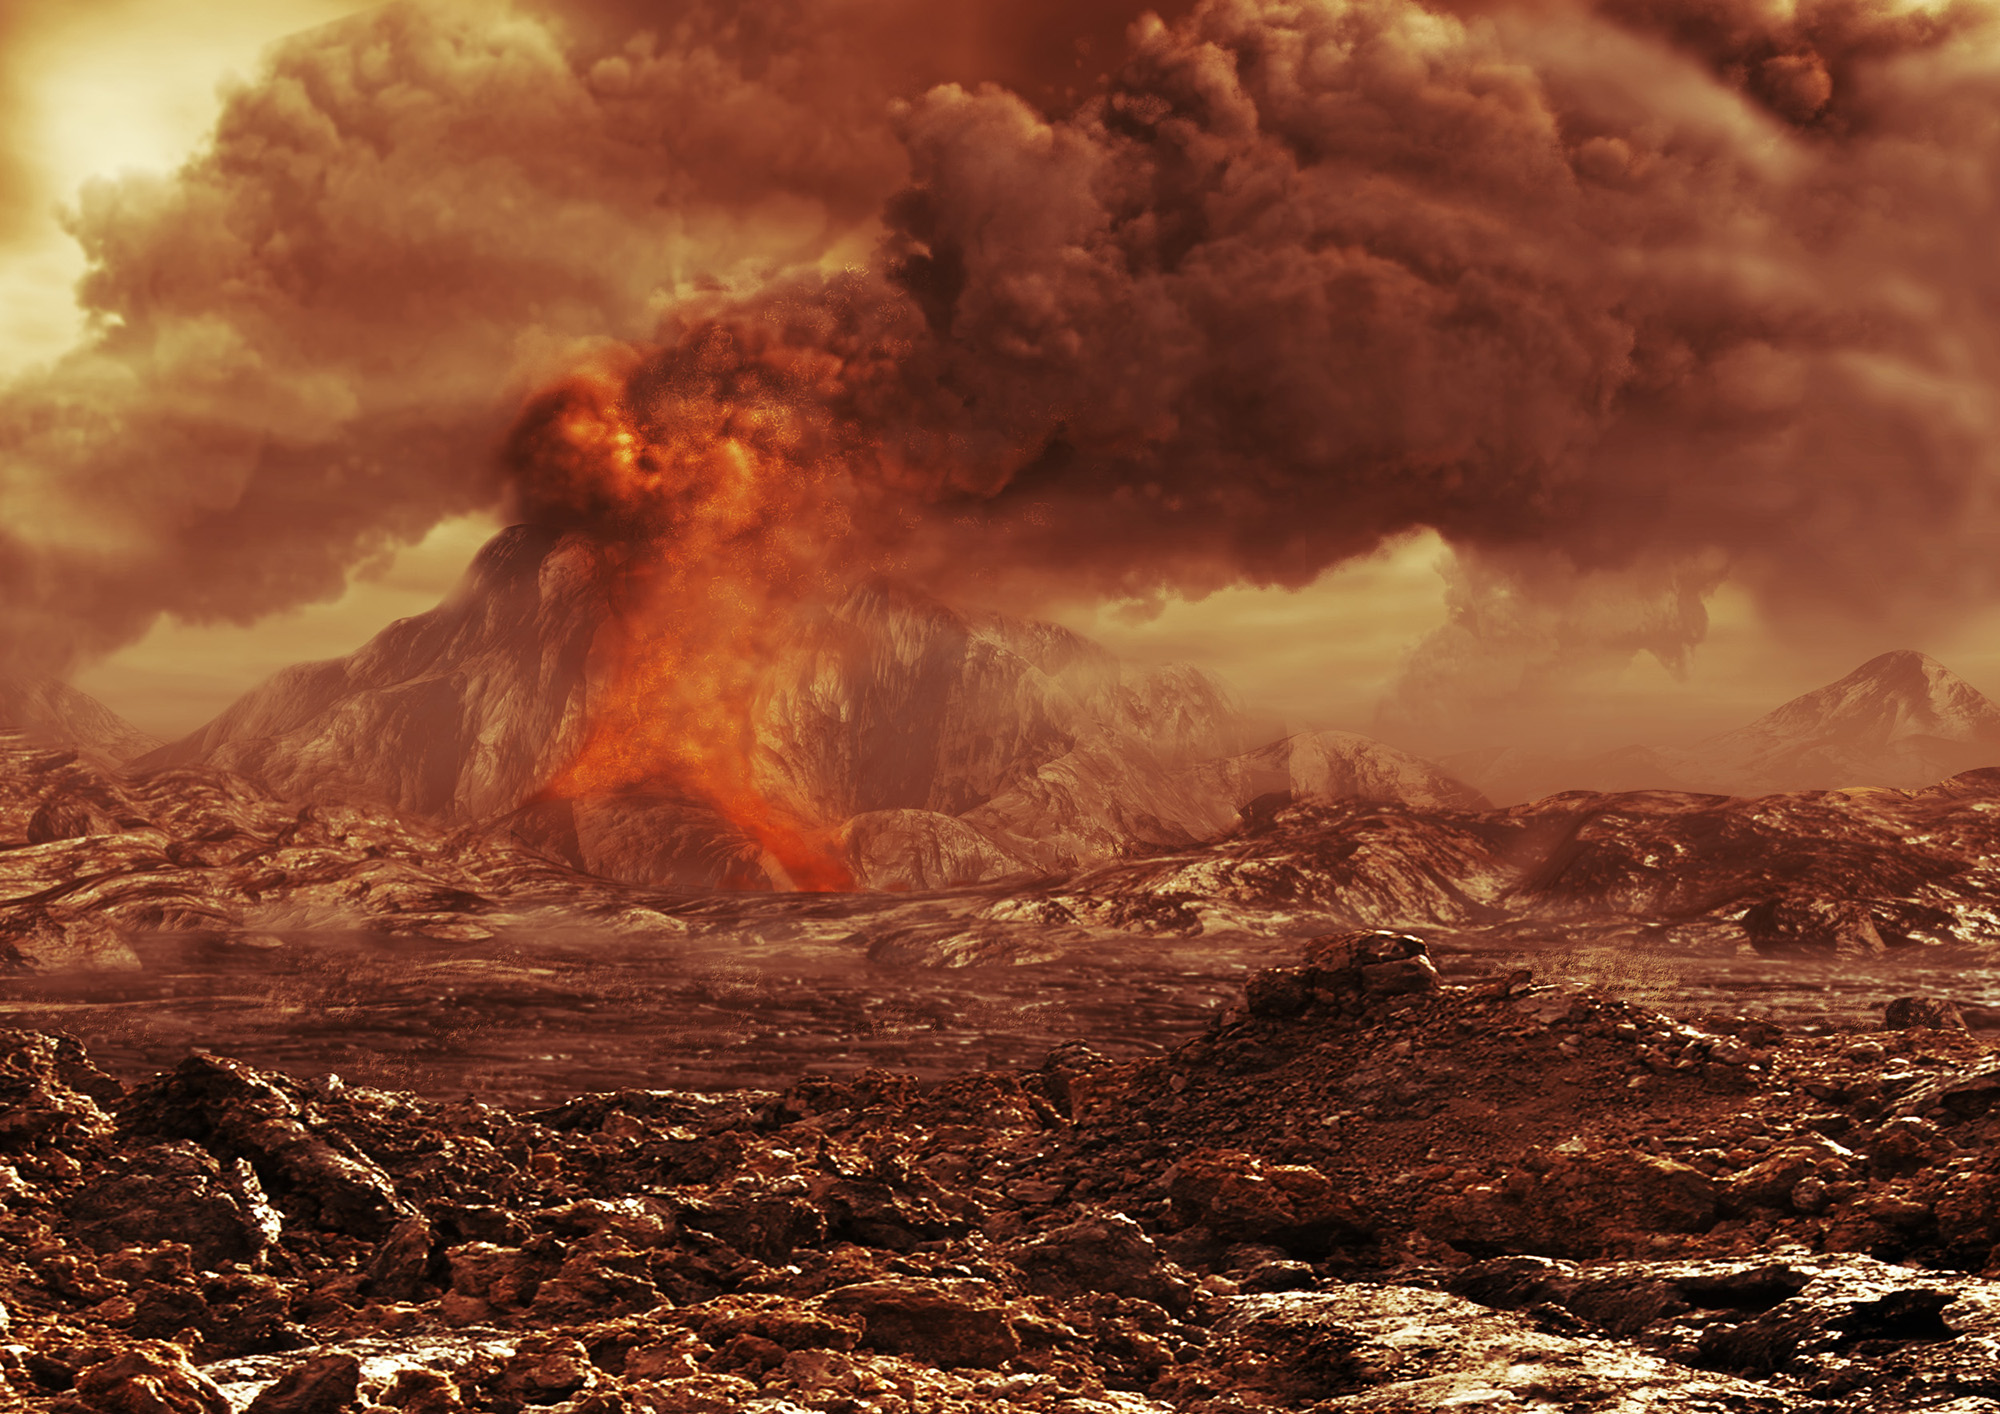 venus volcanoes nasa - photo #4